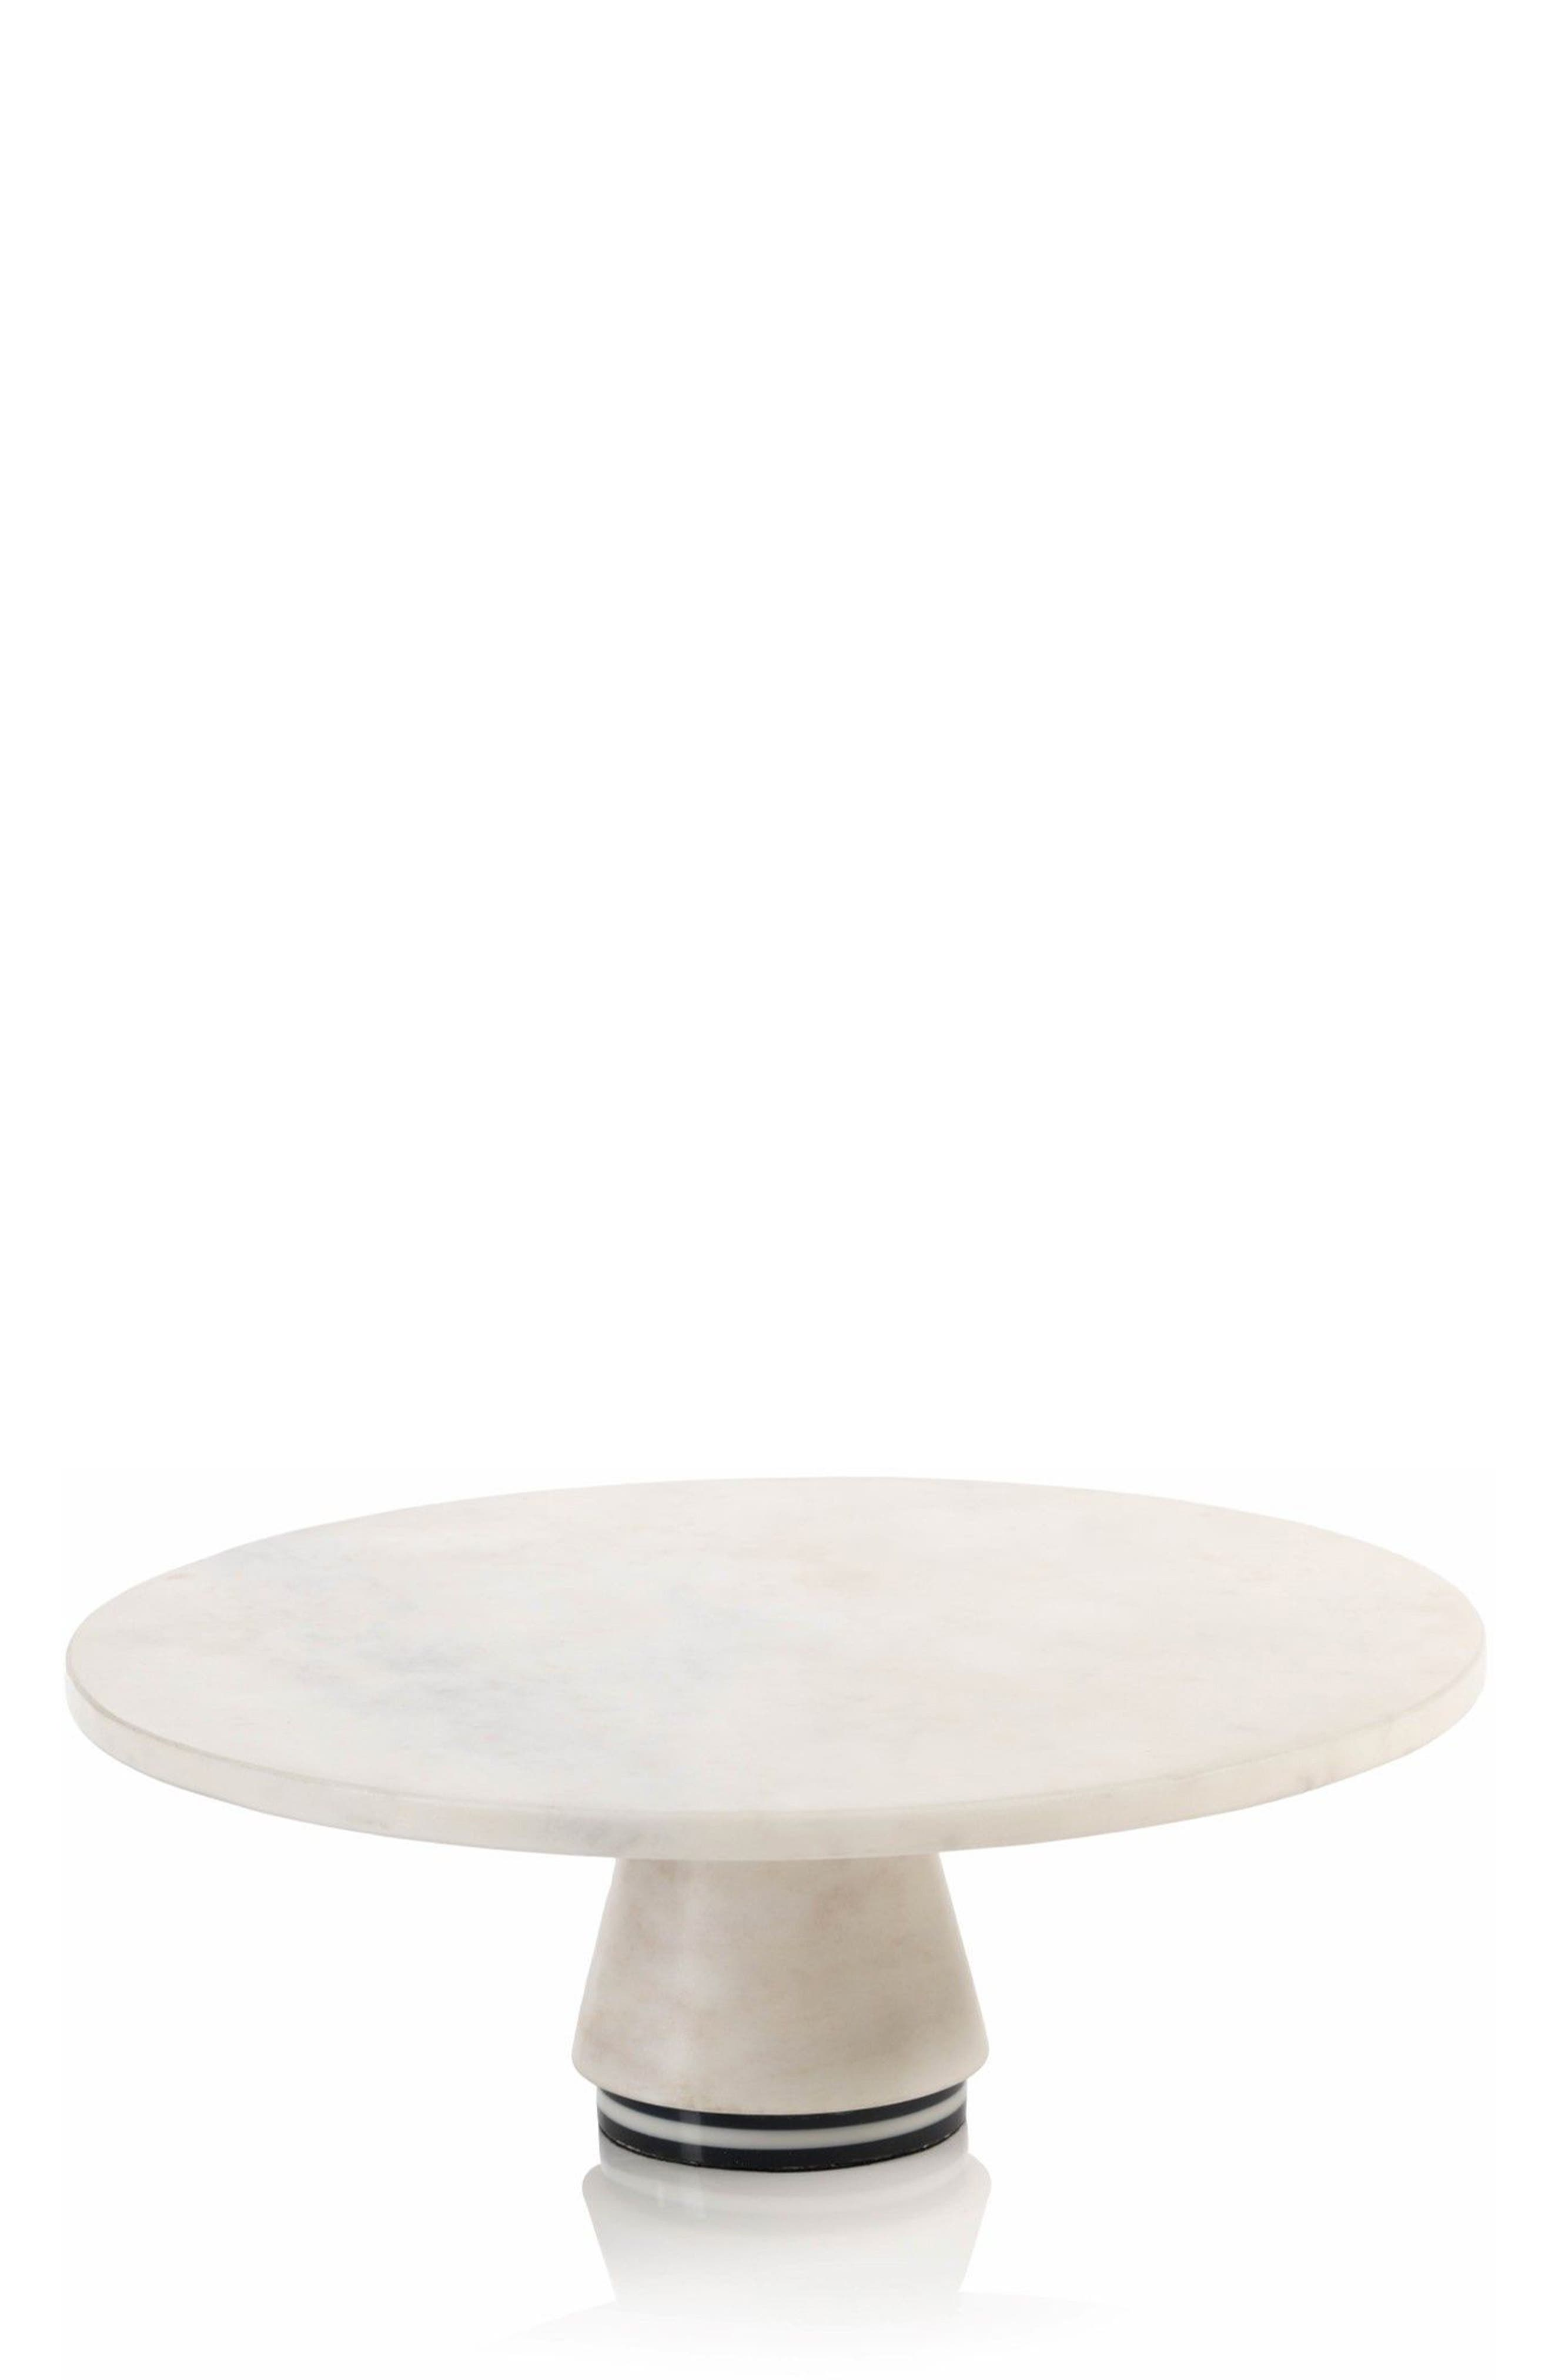 Marine Marble Cake Stand,                             Main thumbnail 1, color,                             100